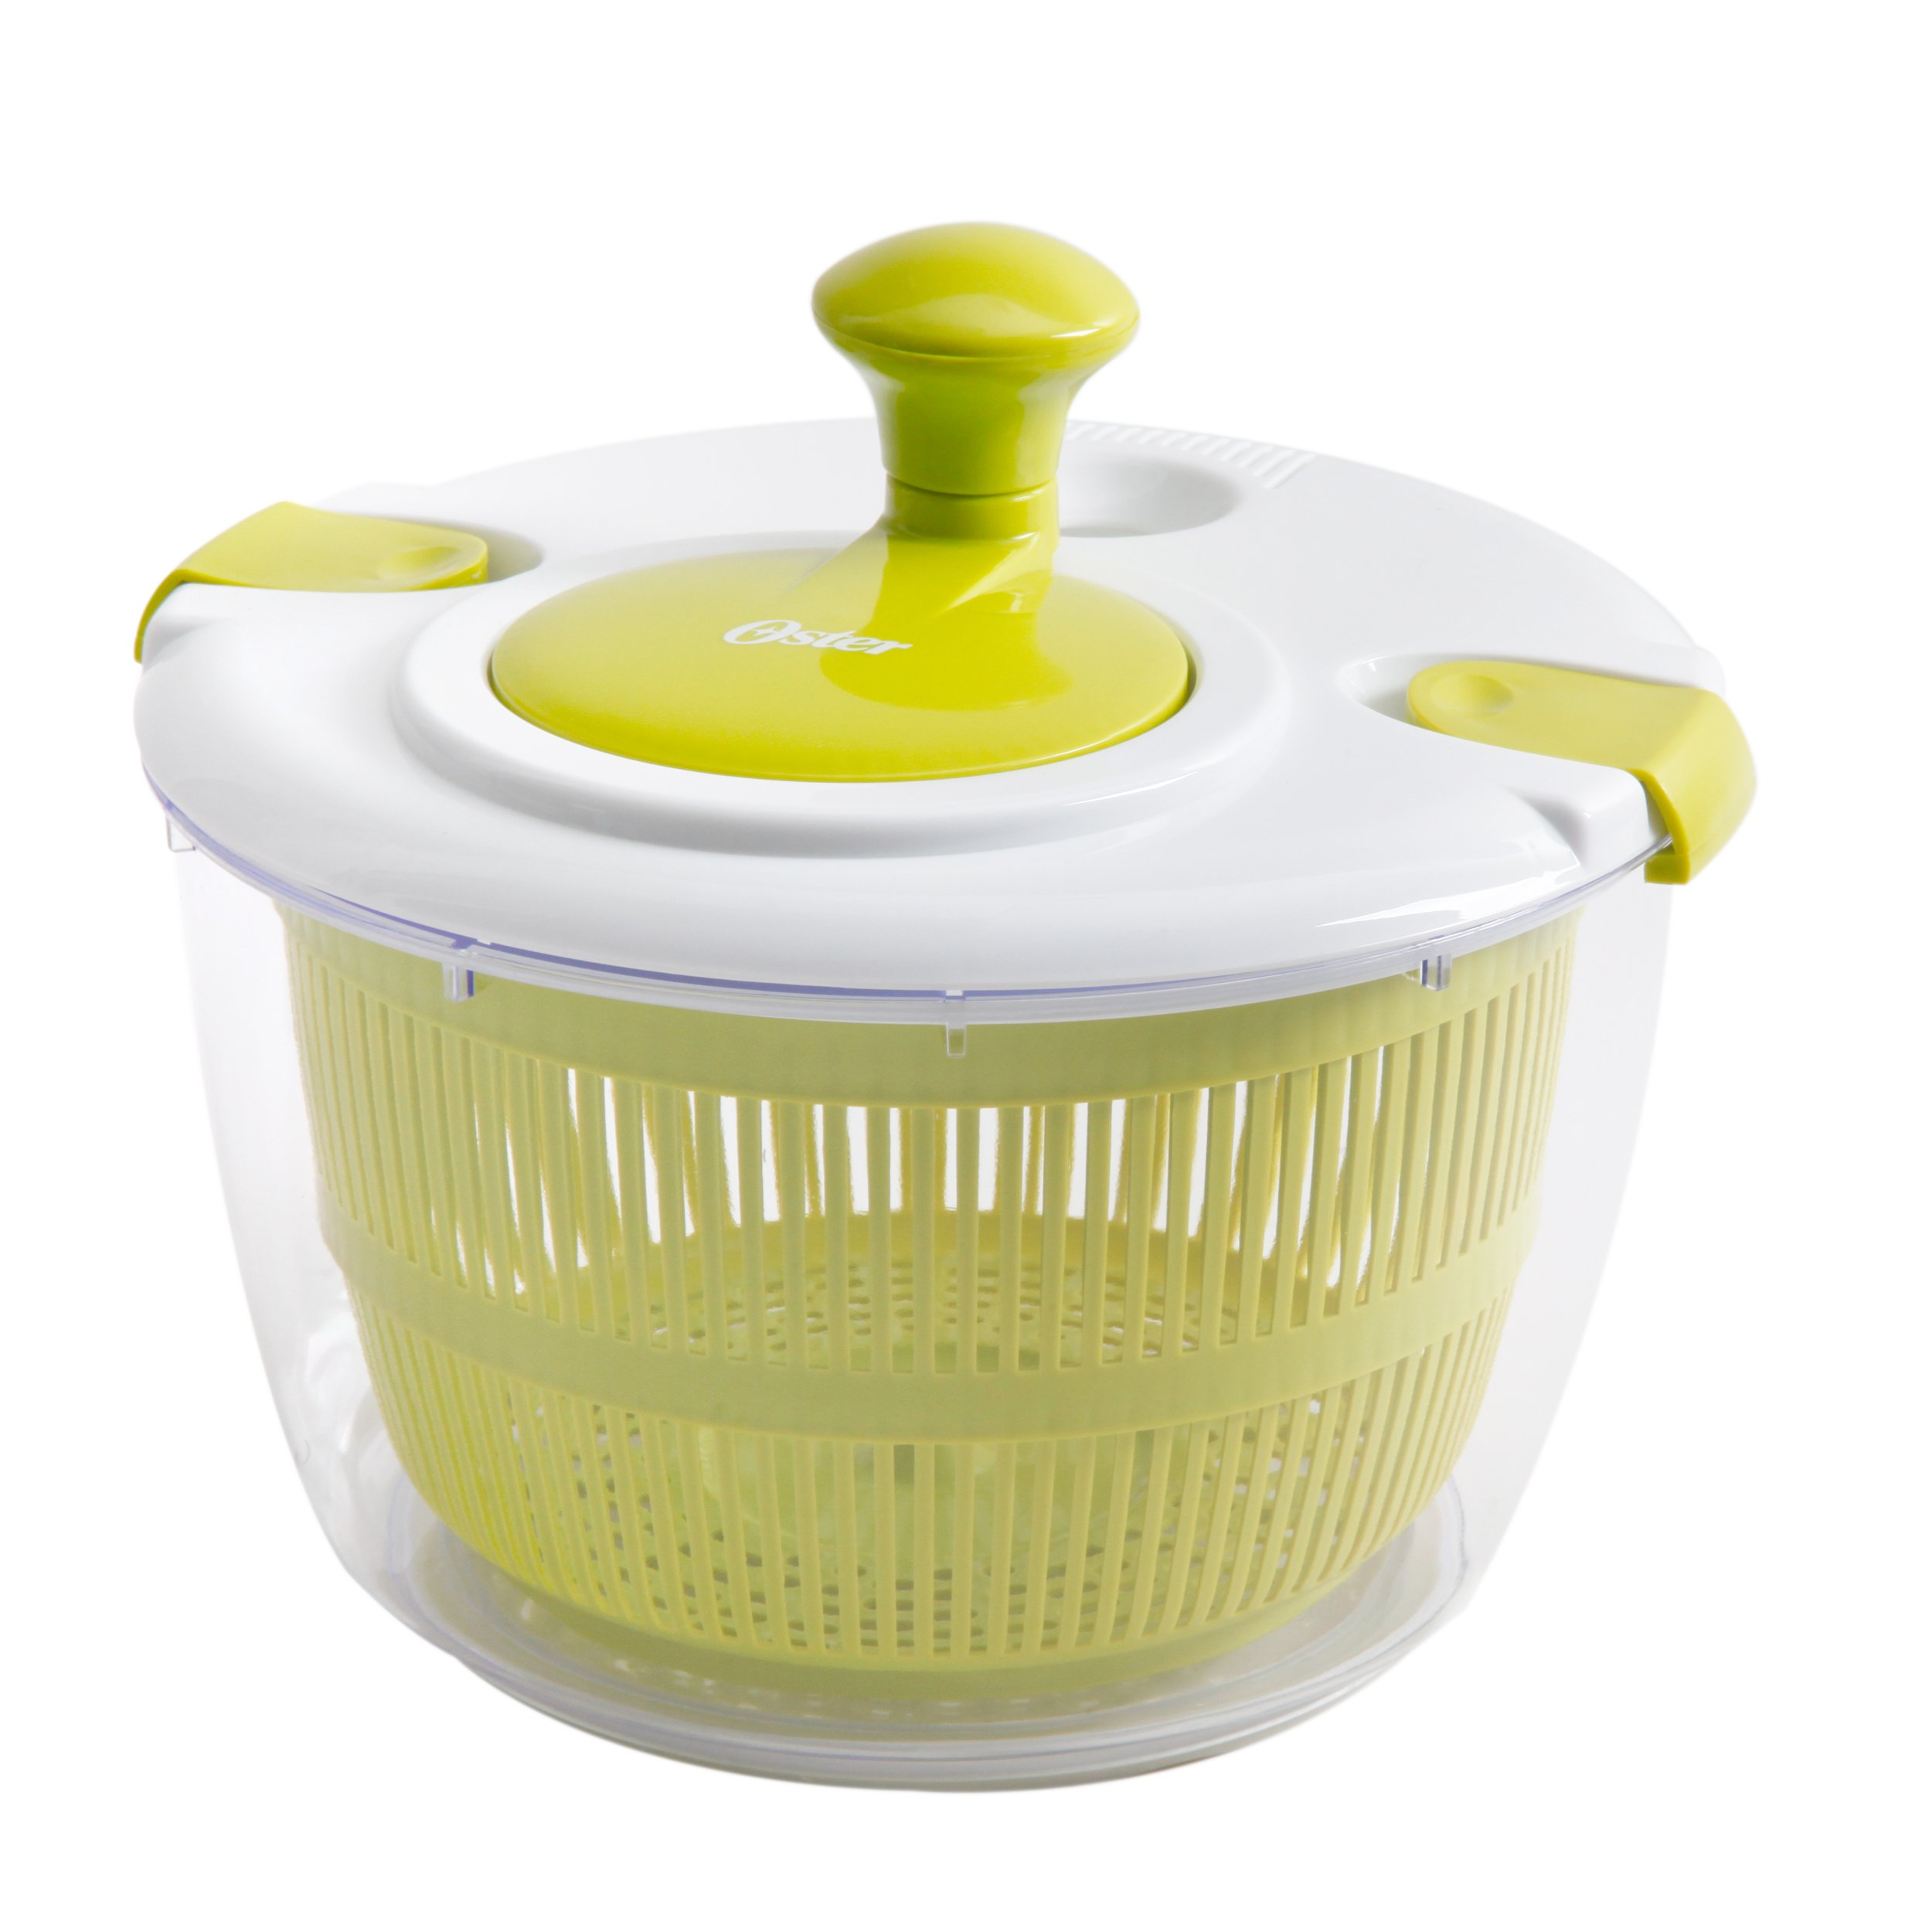 Oster Gadgets 92106.03 Kitchen Artistry Salad Spinner, Lime Green